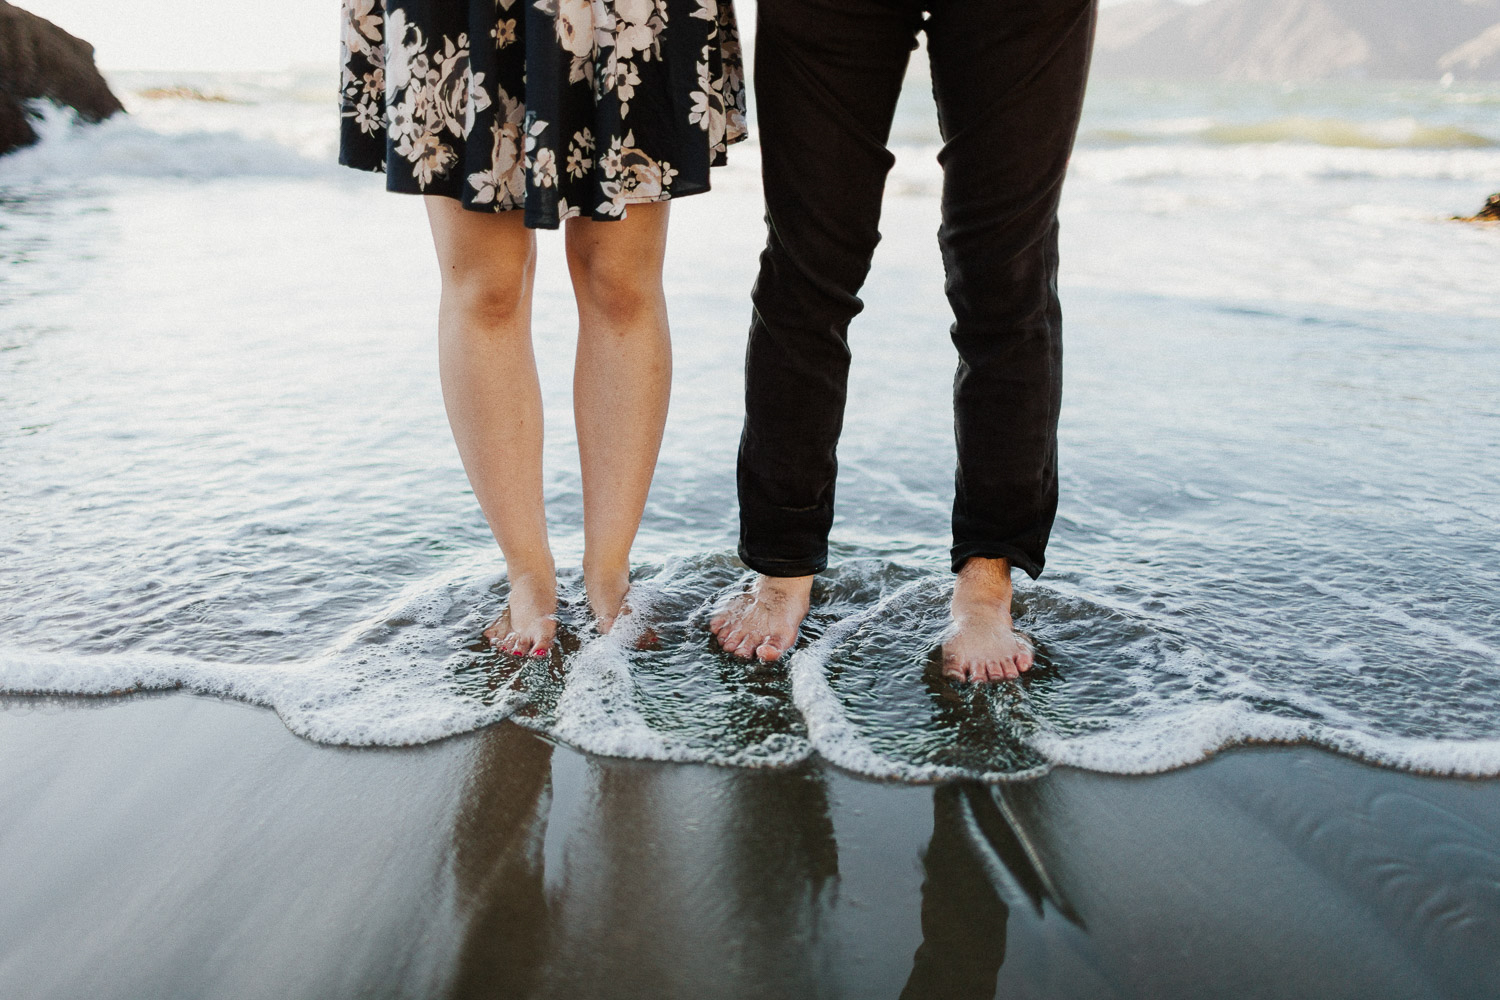 Image of couple's feet in water on beach